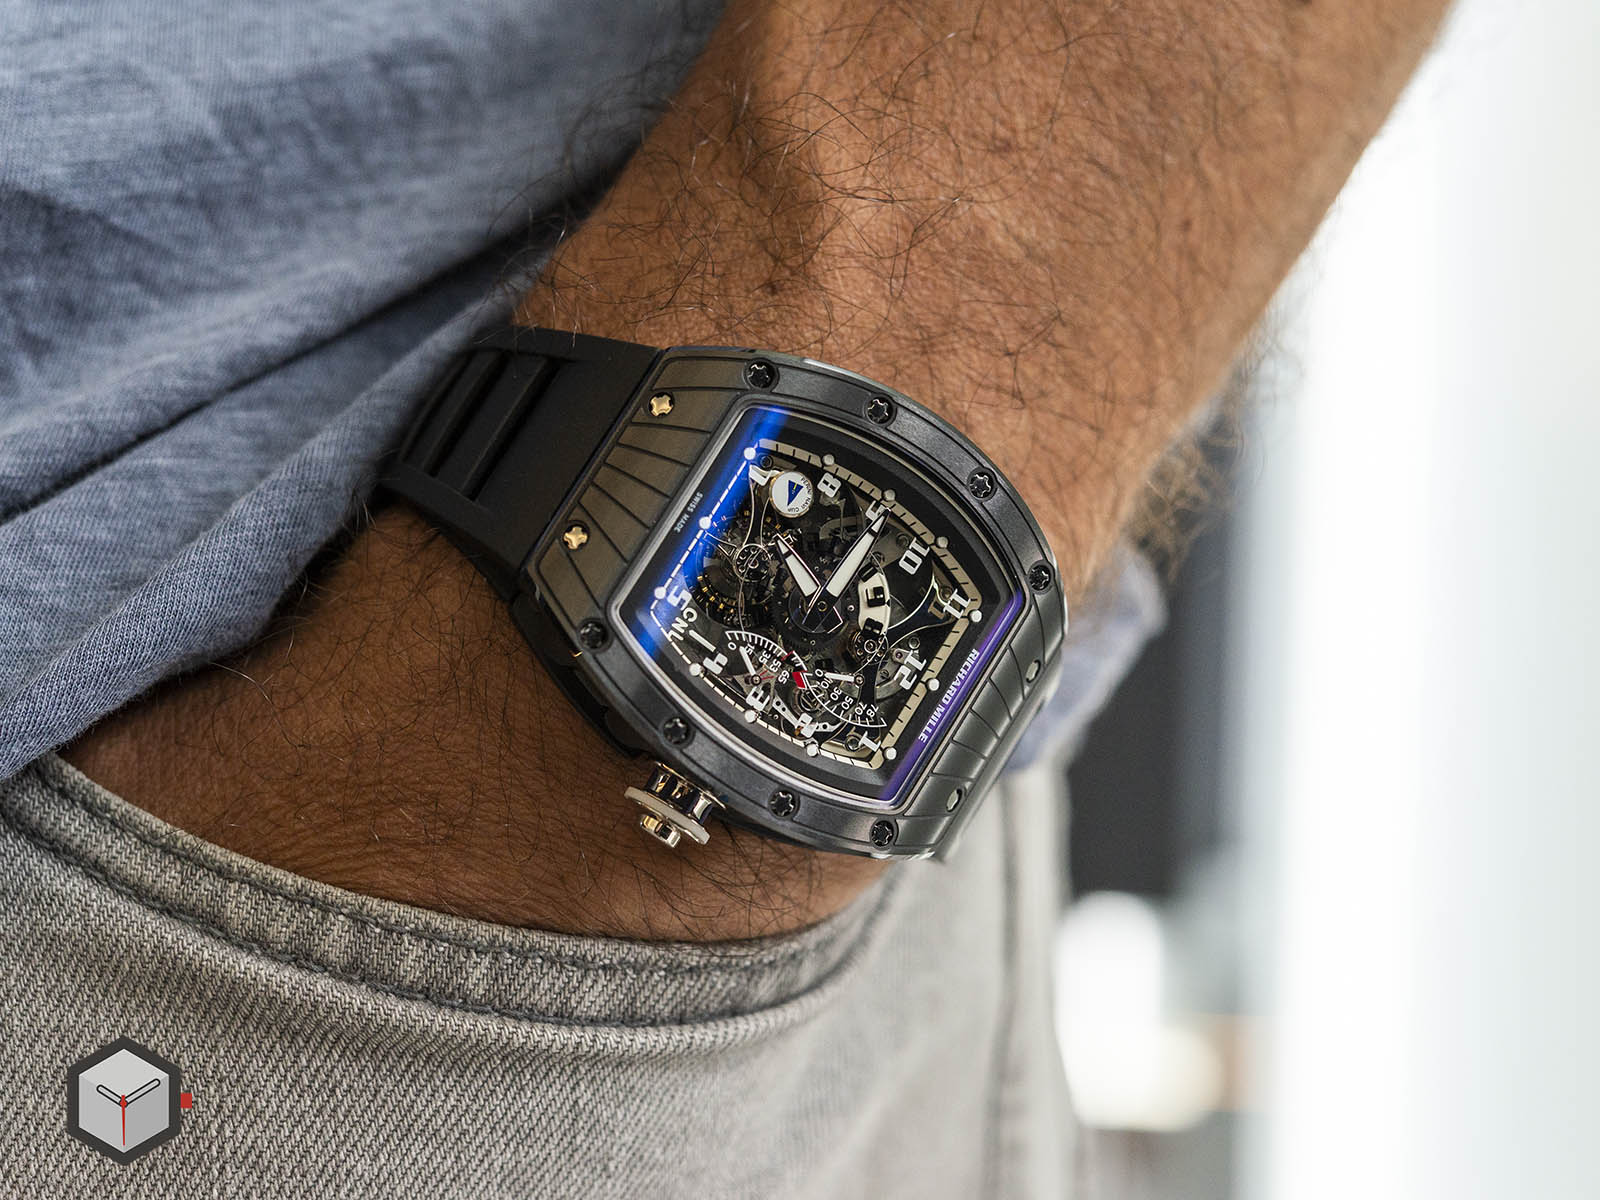 richard-mille-rm015-tourbillon-dual-time-zone-perini-navi-cup-12.jpg